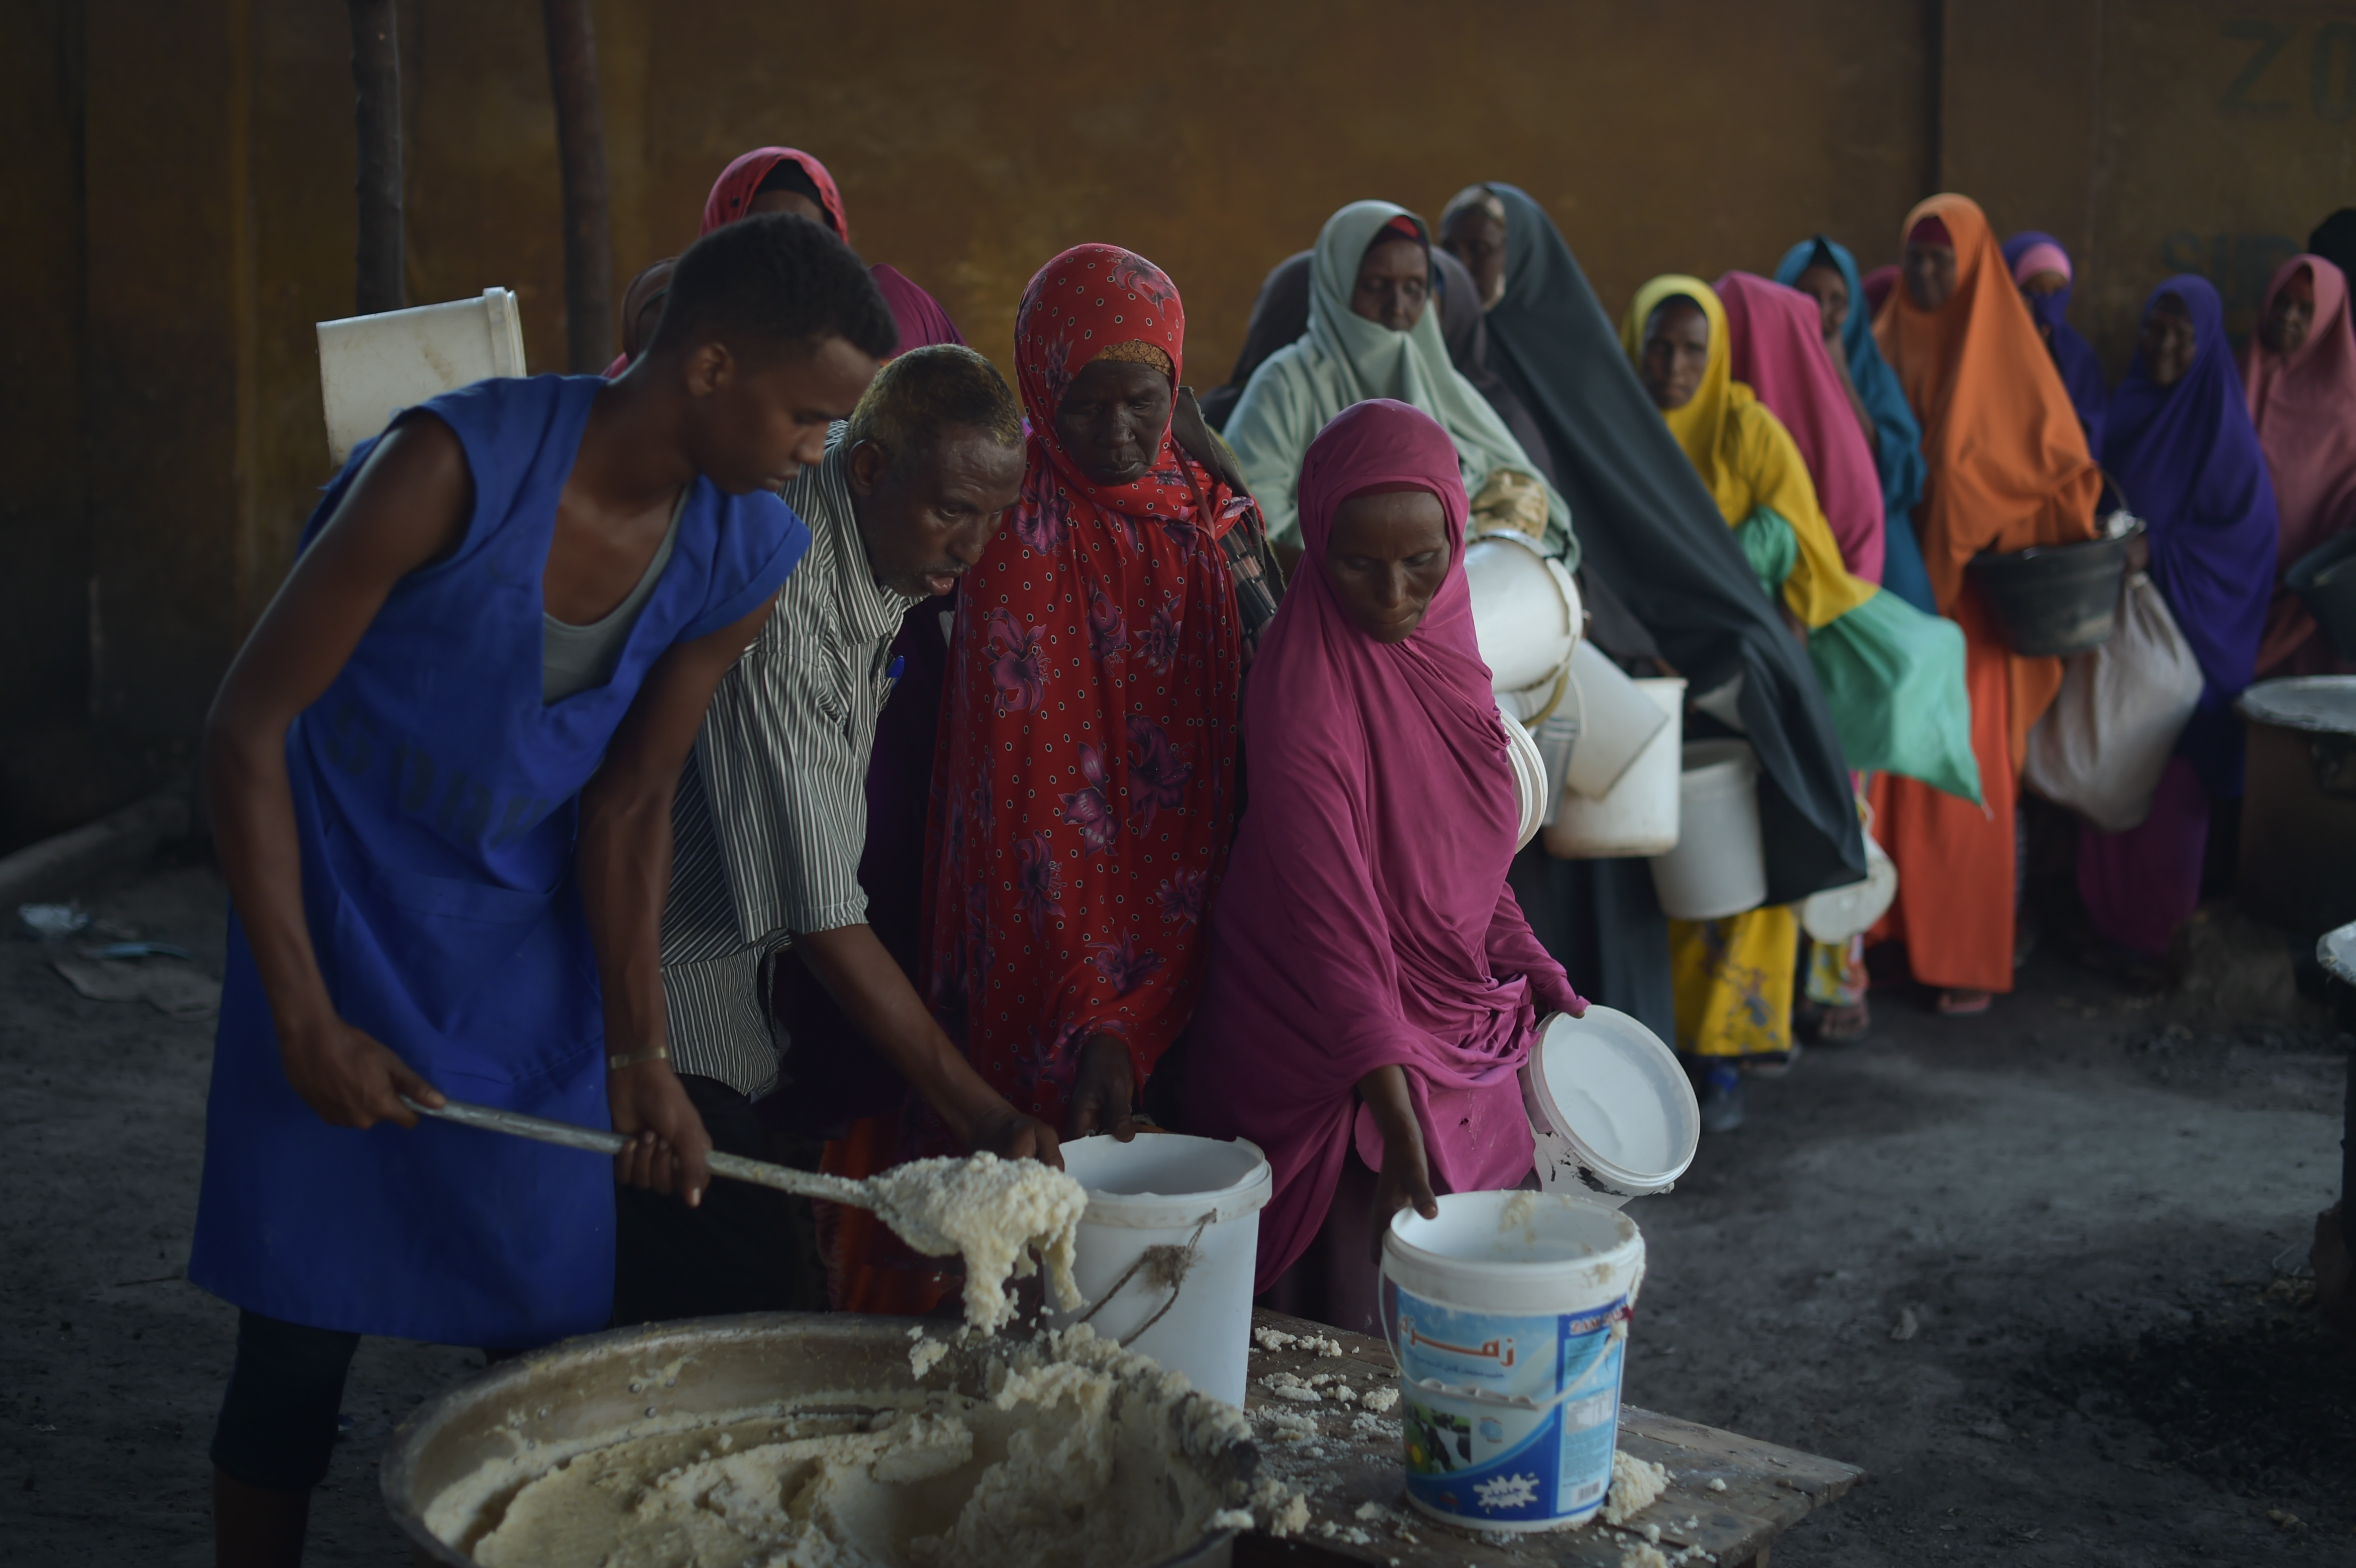 Women line up to gather cooked food from a large pot.